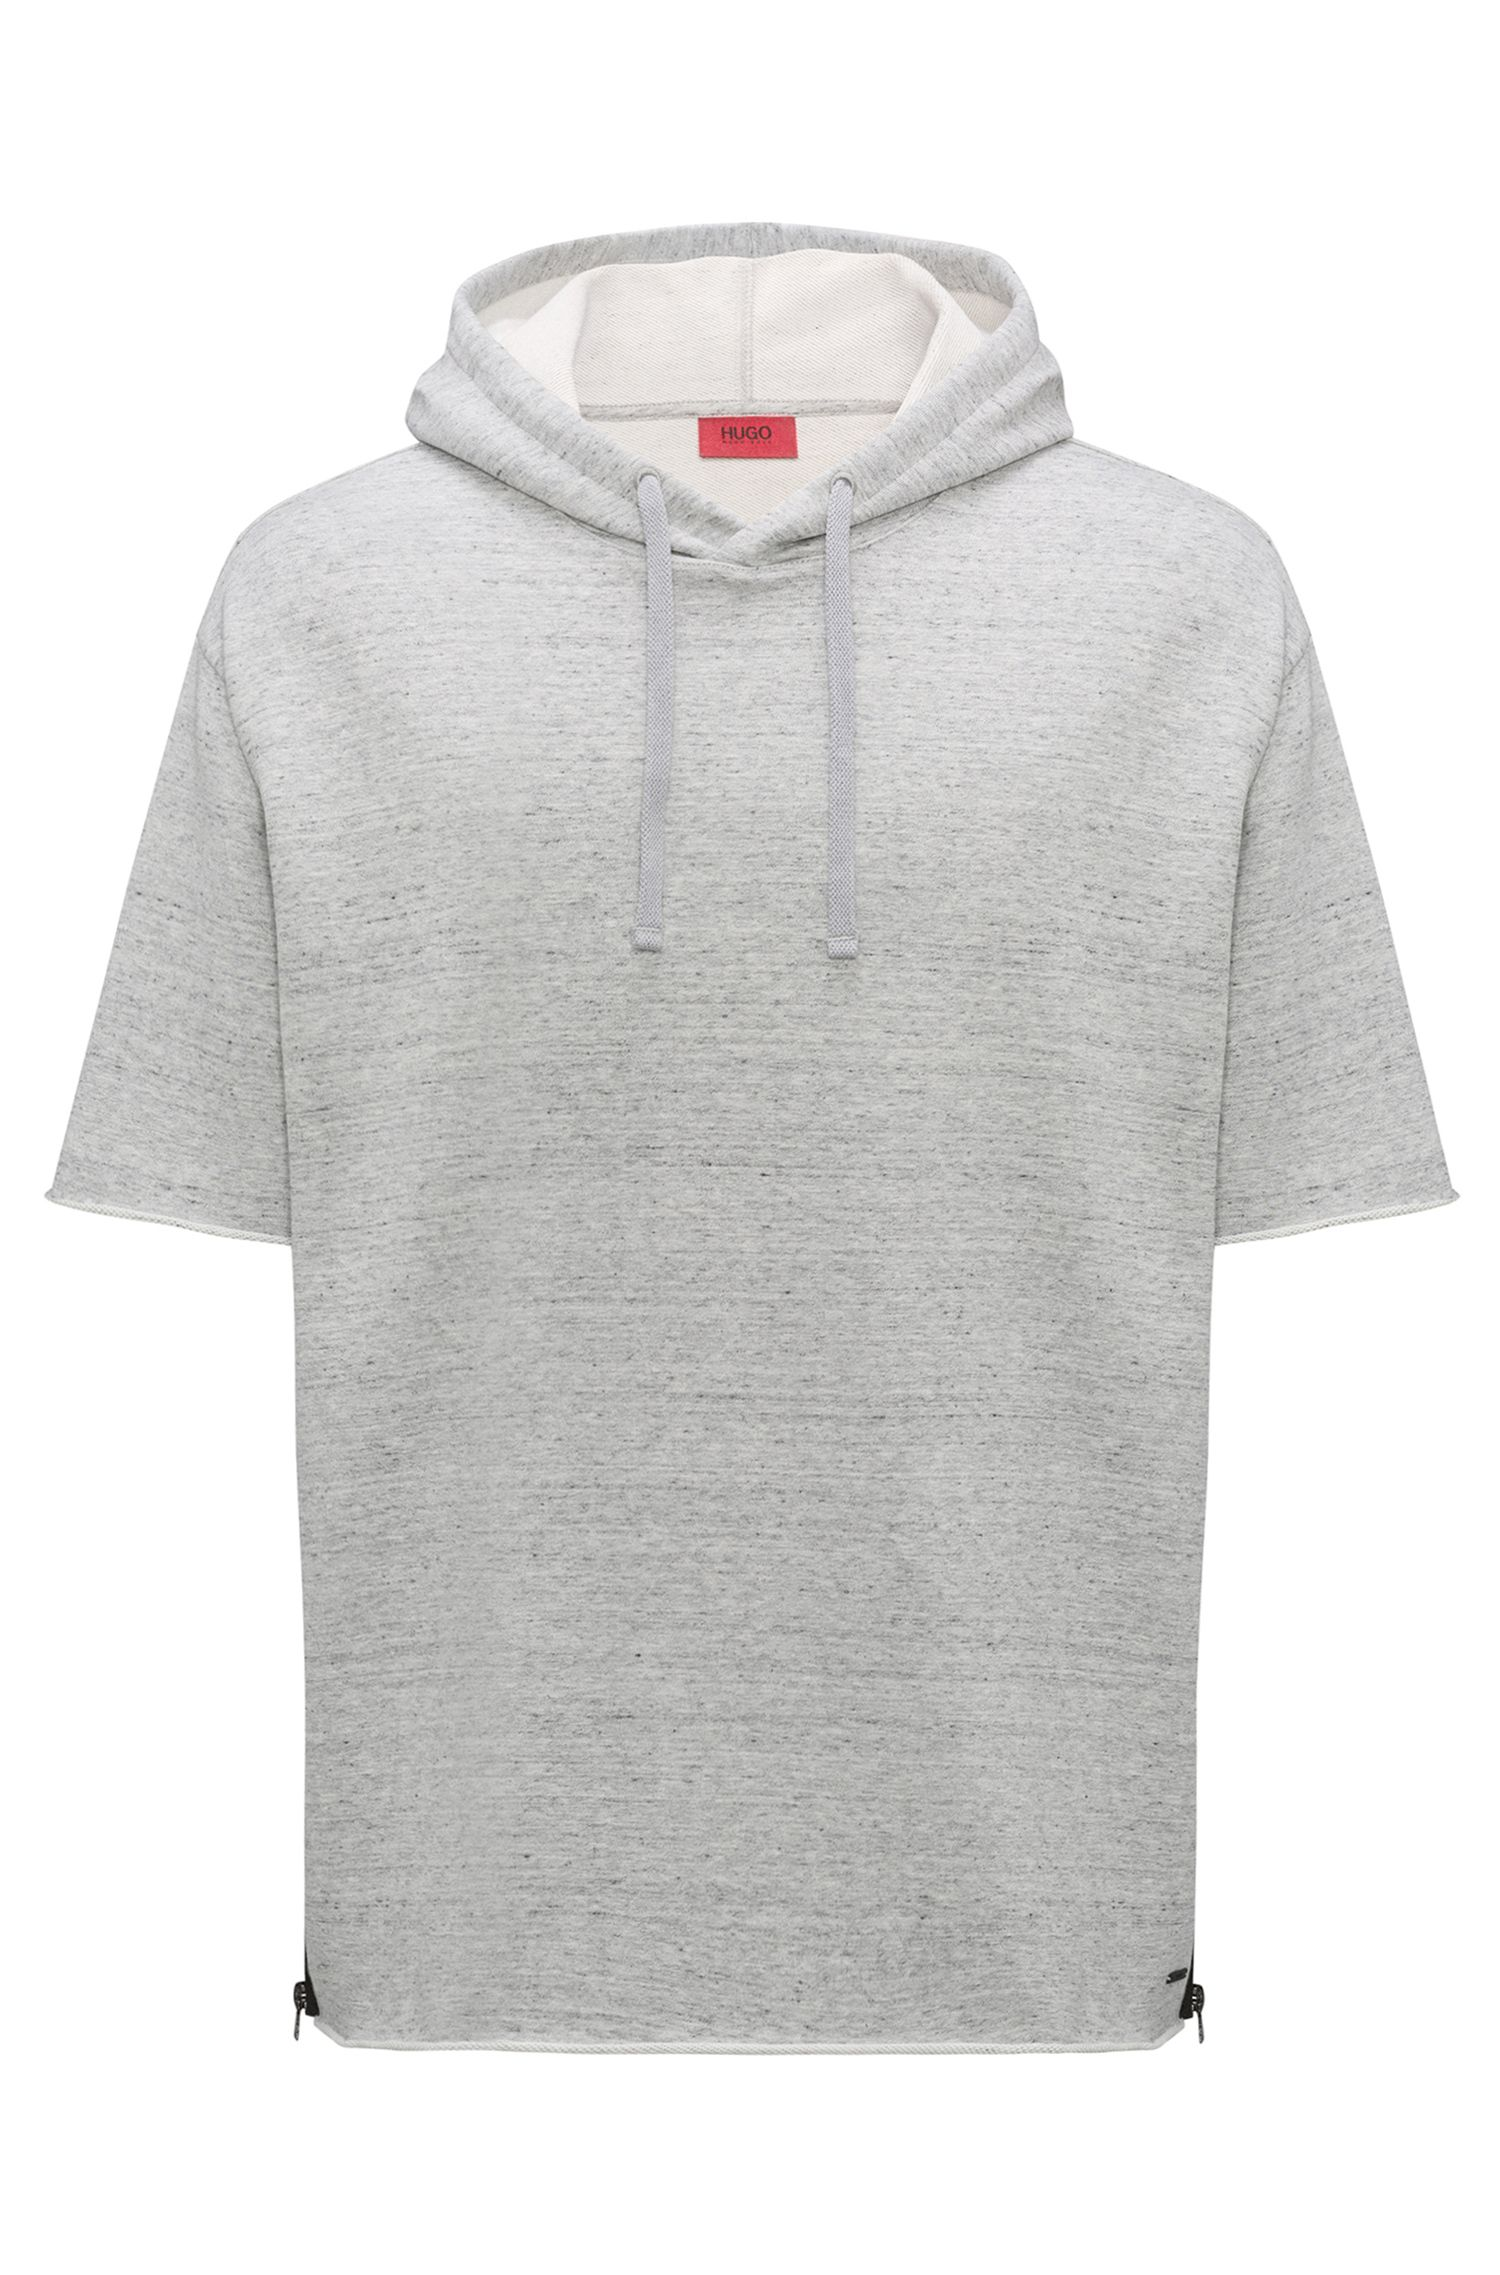 Short-sleeved hooded sweatshirt with zippered side seams